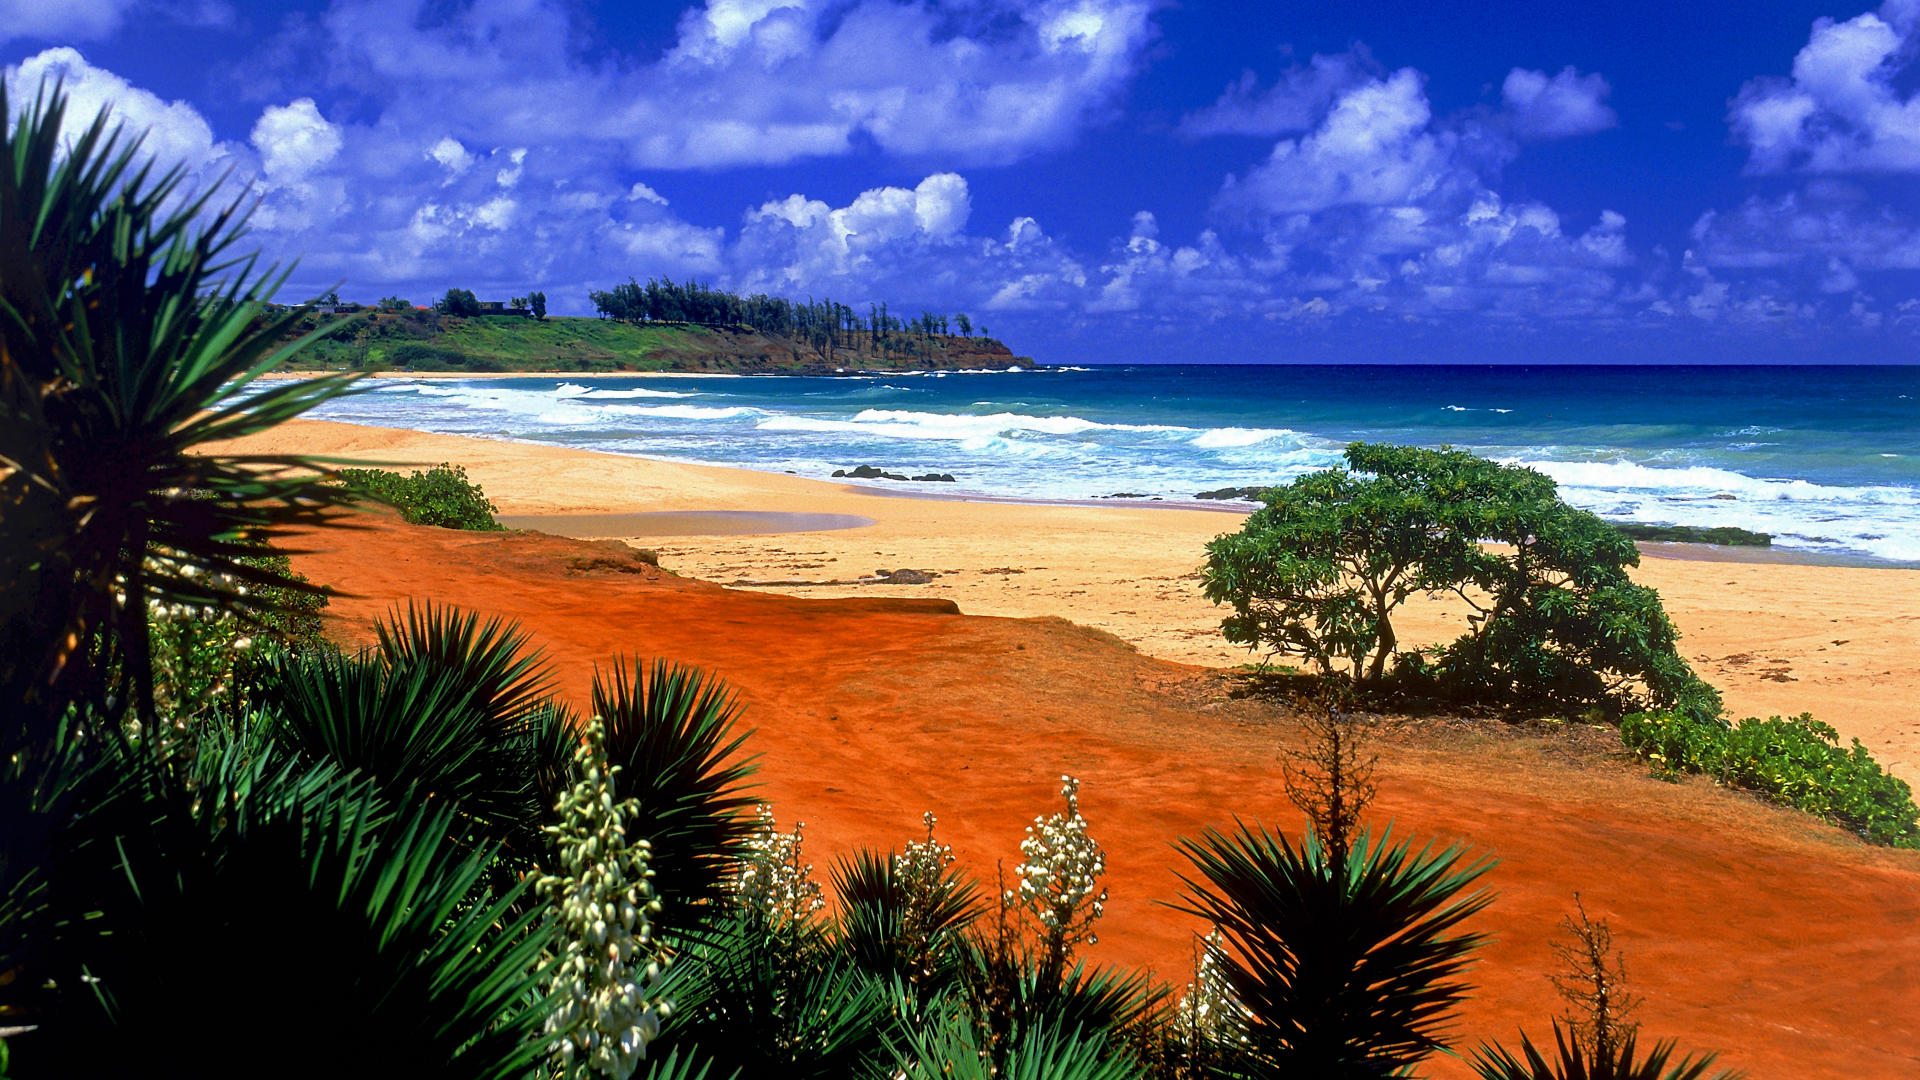 Hawaii Beach wallpaper   271124 1920x1080